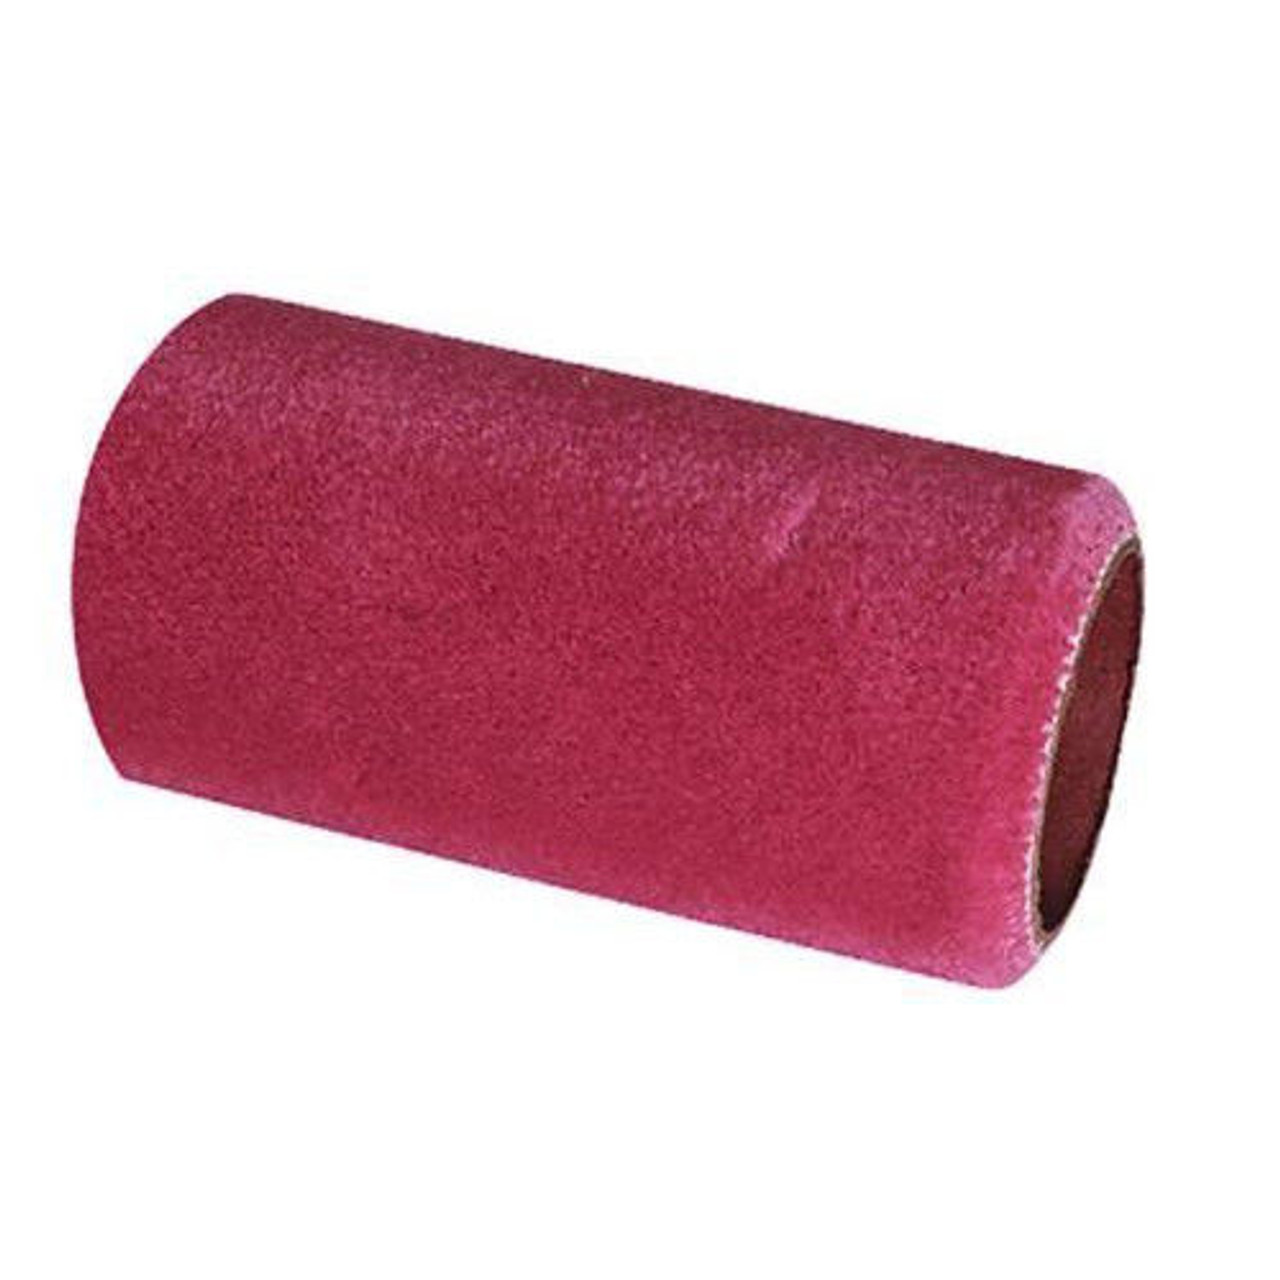 Seachoice 4 Inch Mohair Paint Roller - Best for Epoxies, Urethanes, Varnish and Adhesives